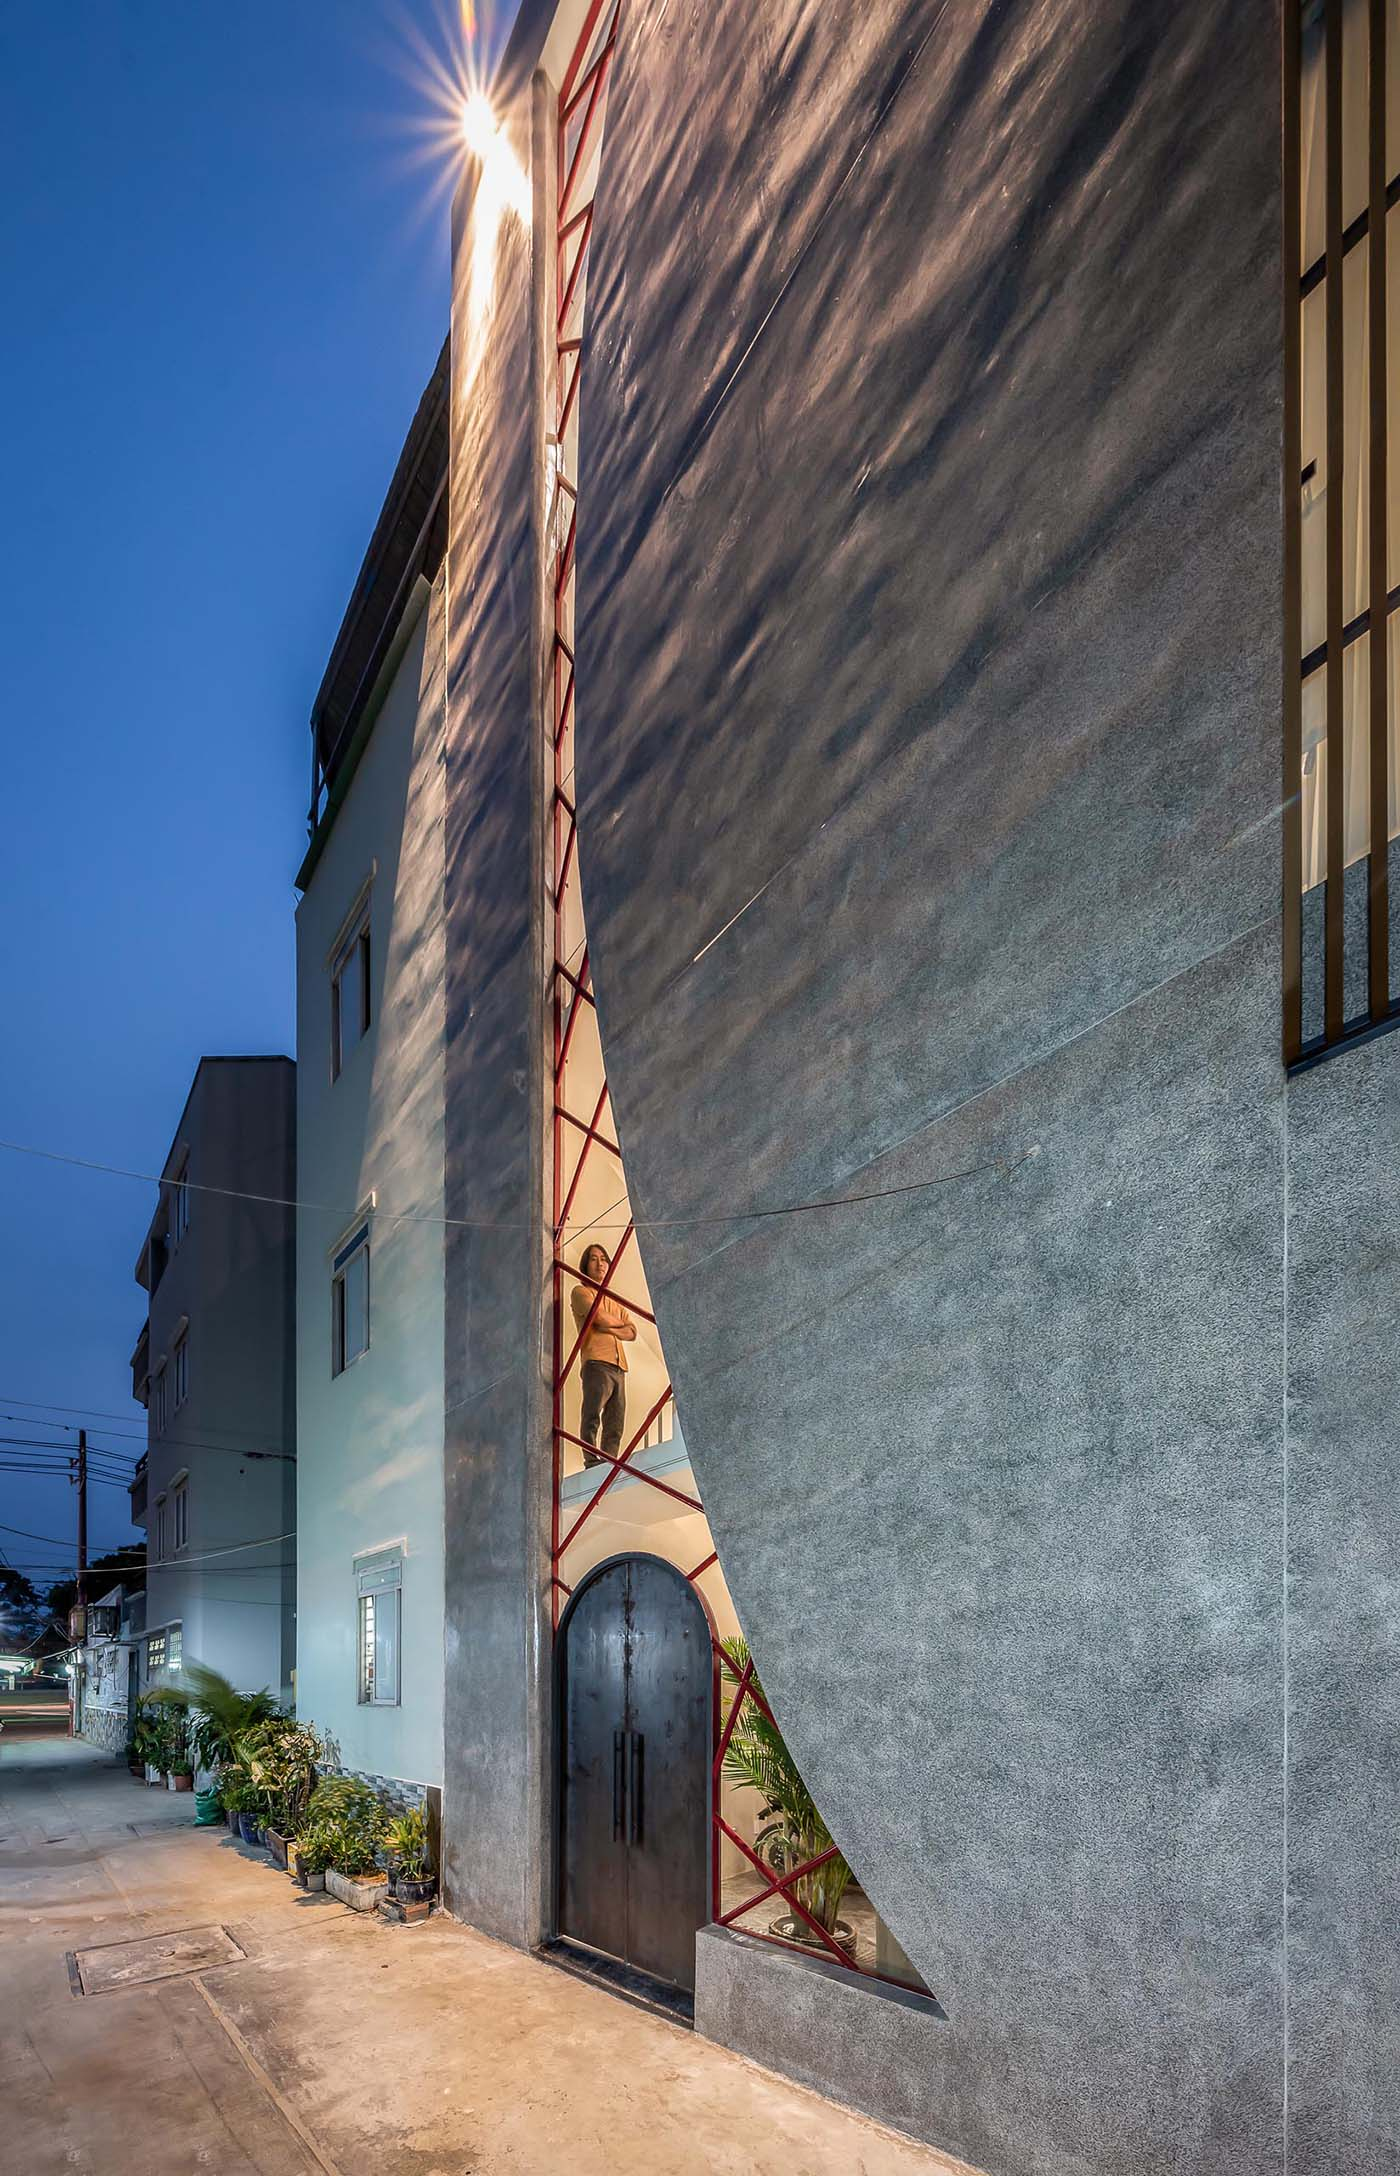 A modern concrete house with an irregular shaped window, also incorporates the steel arched front door.